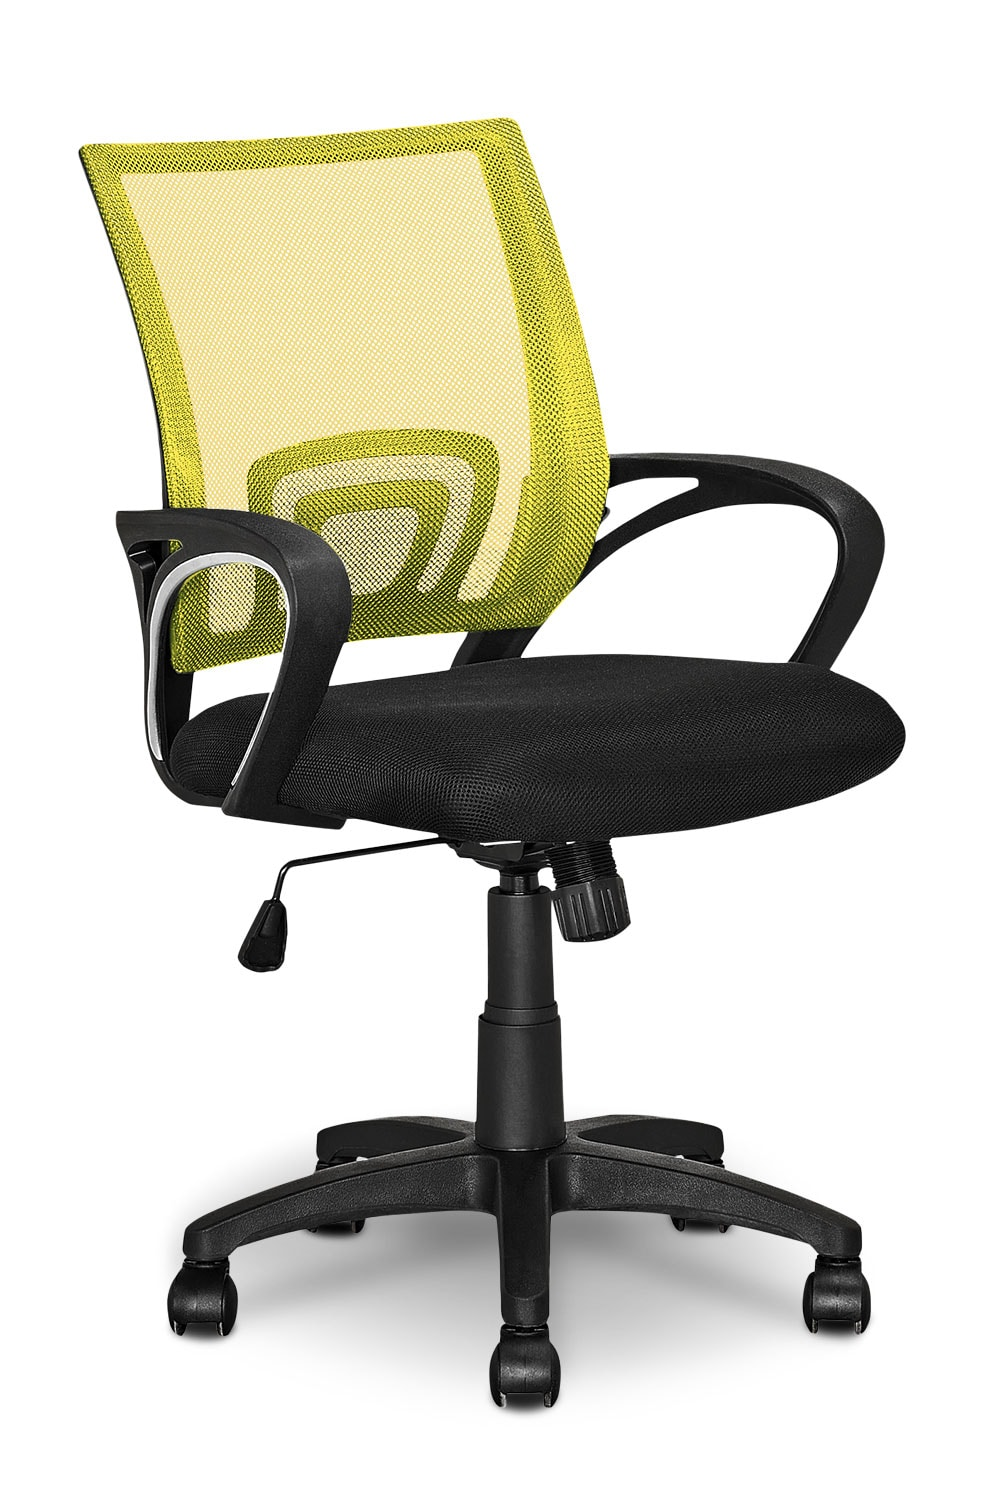 Loft Mesh Office Chair – Yellow